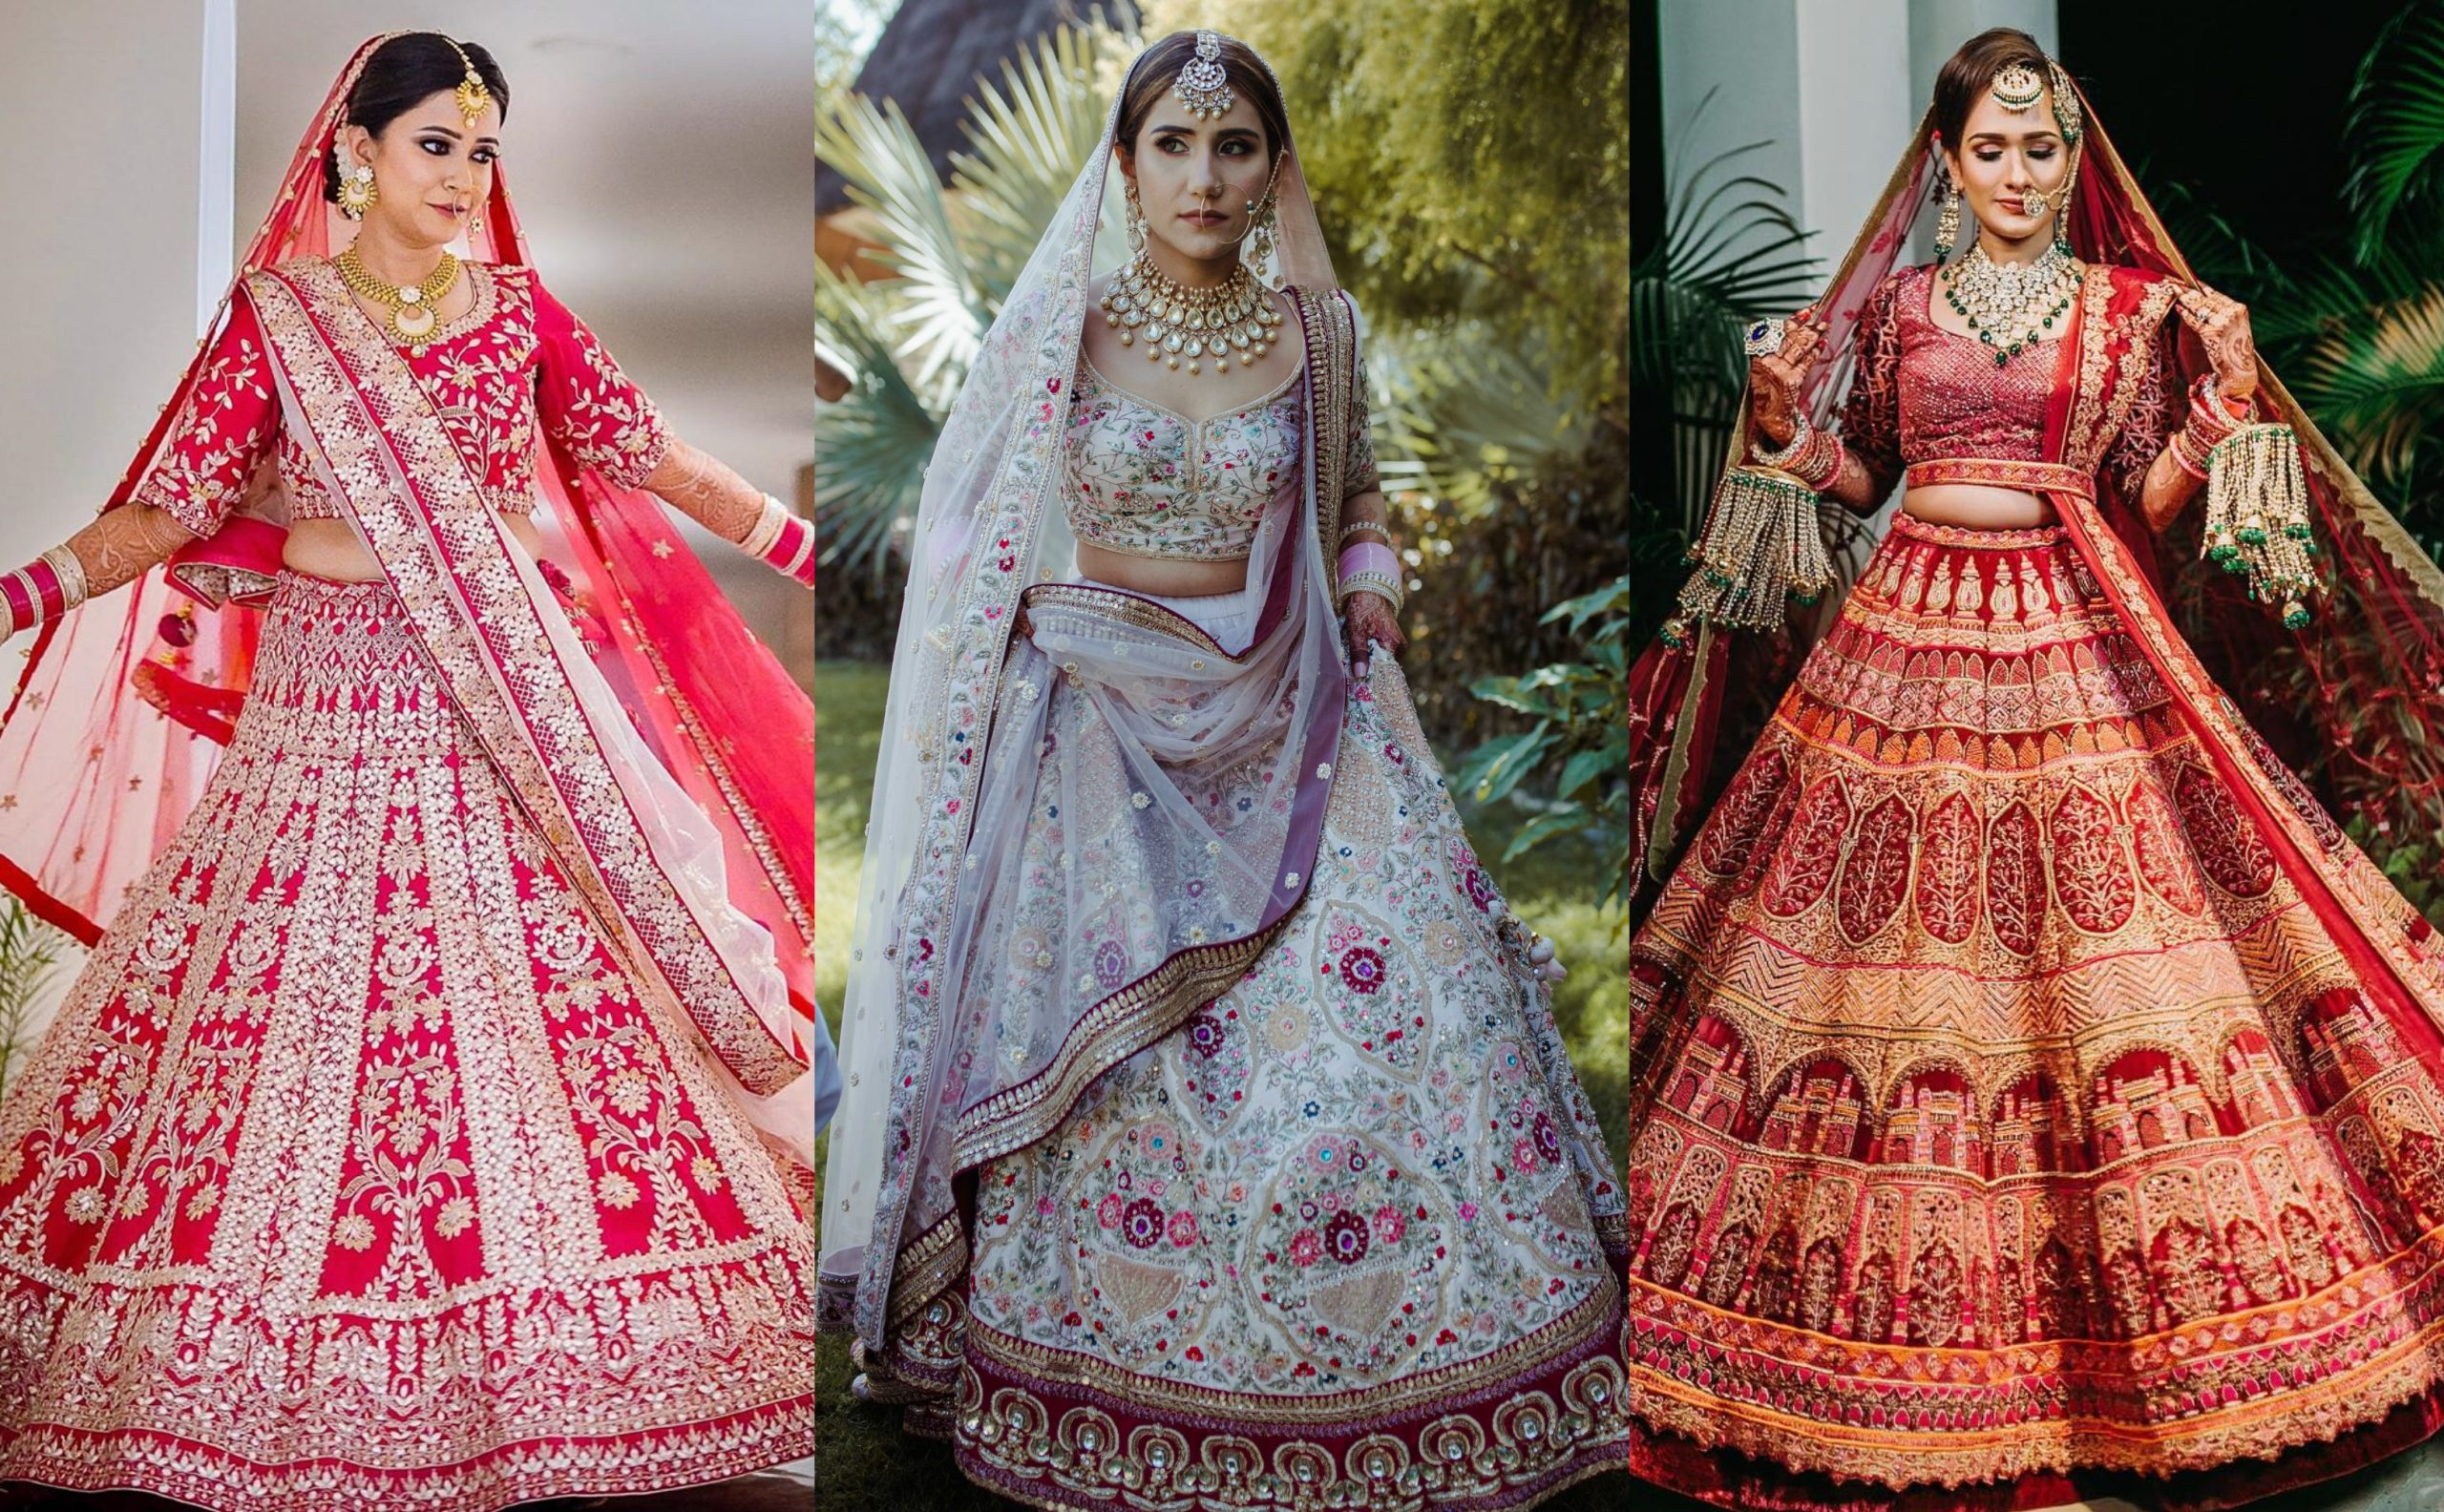 Latest Bridal Dress for Indian Wedding- Price, Design and Other Details